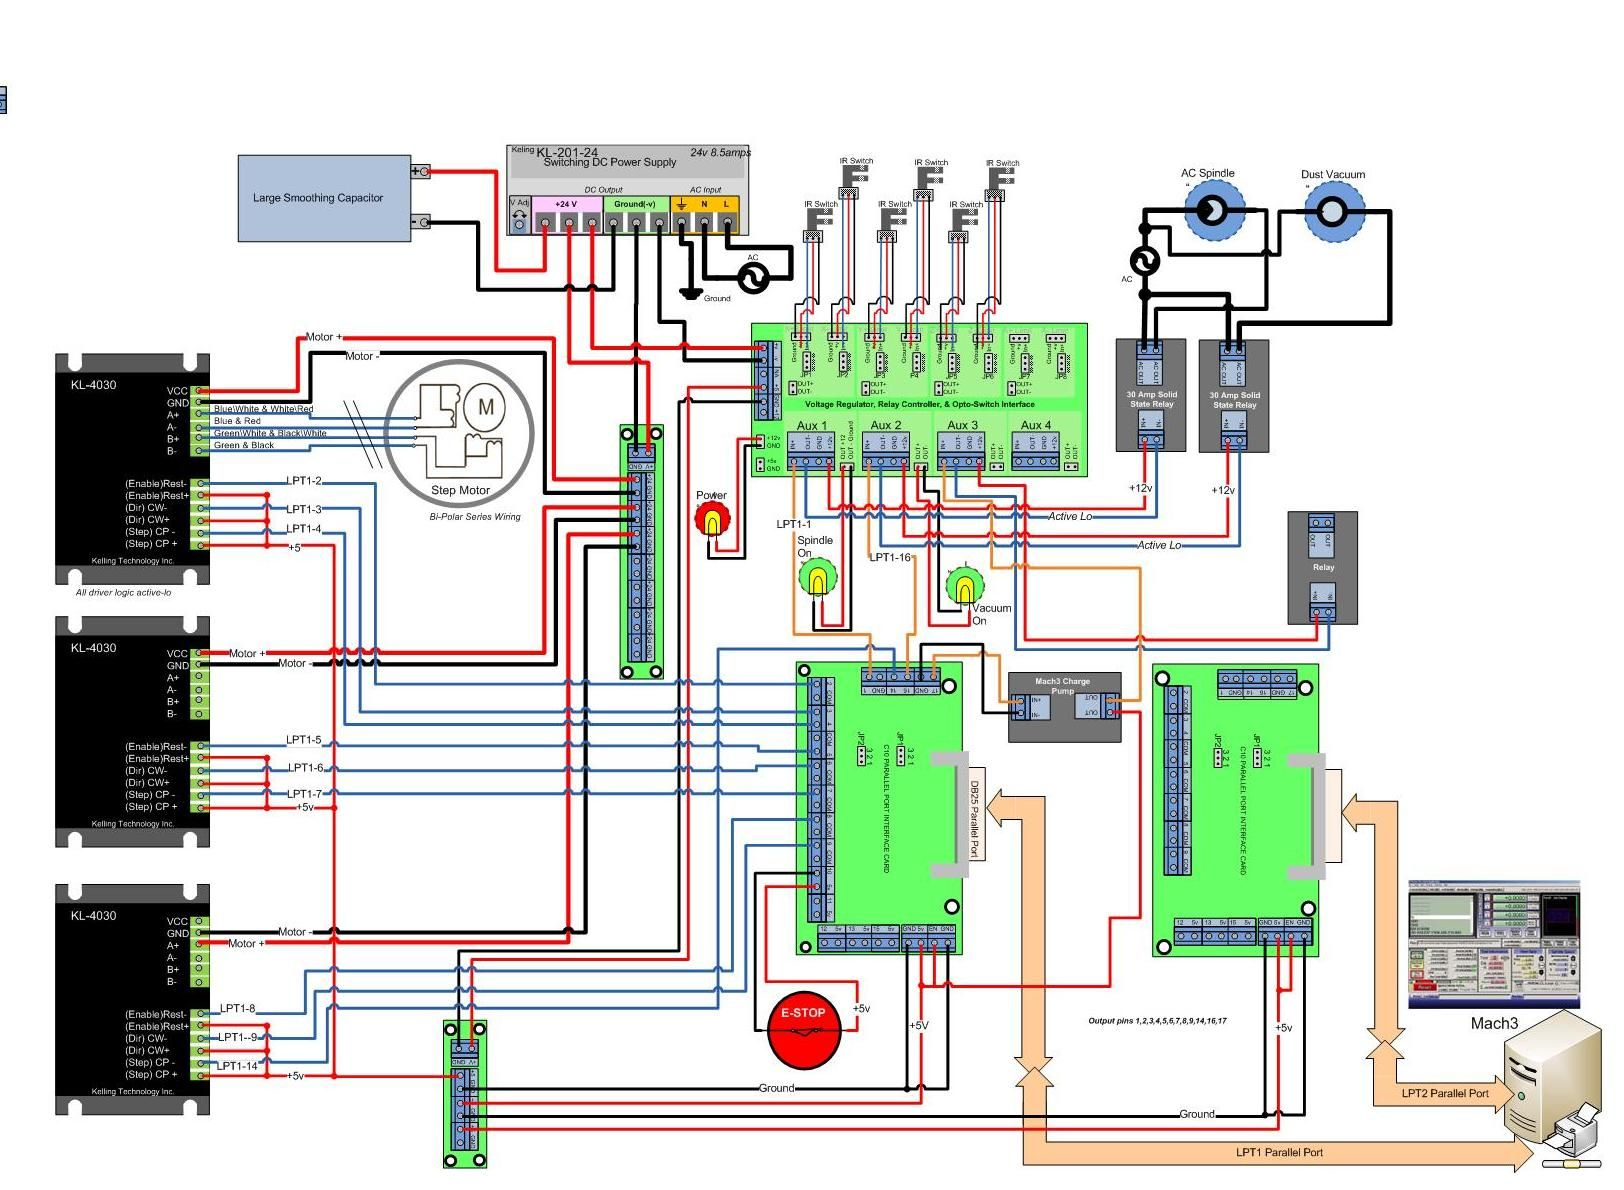 small resolution of wiring diagram for wireless router wiring diagrams router wiring diagrams